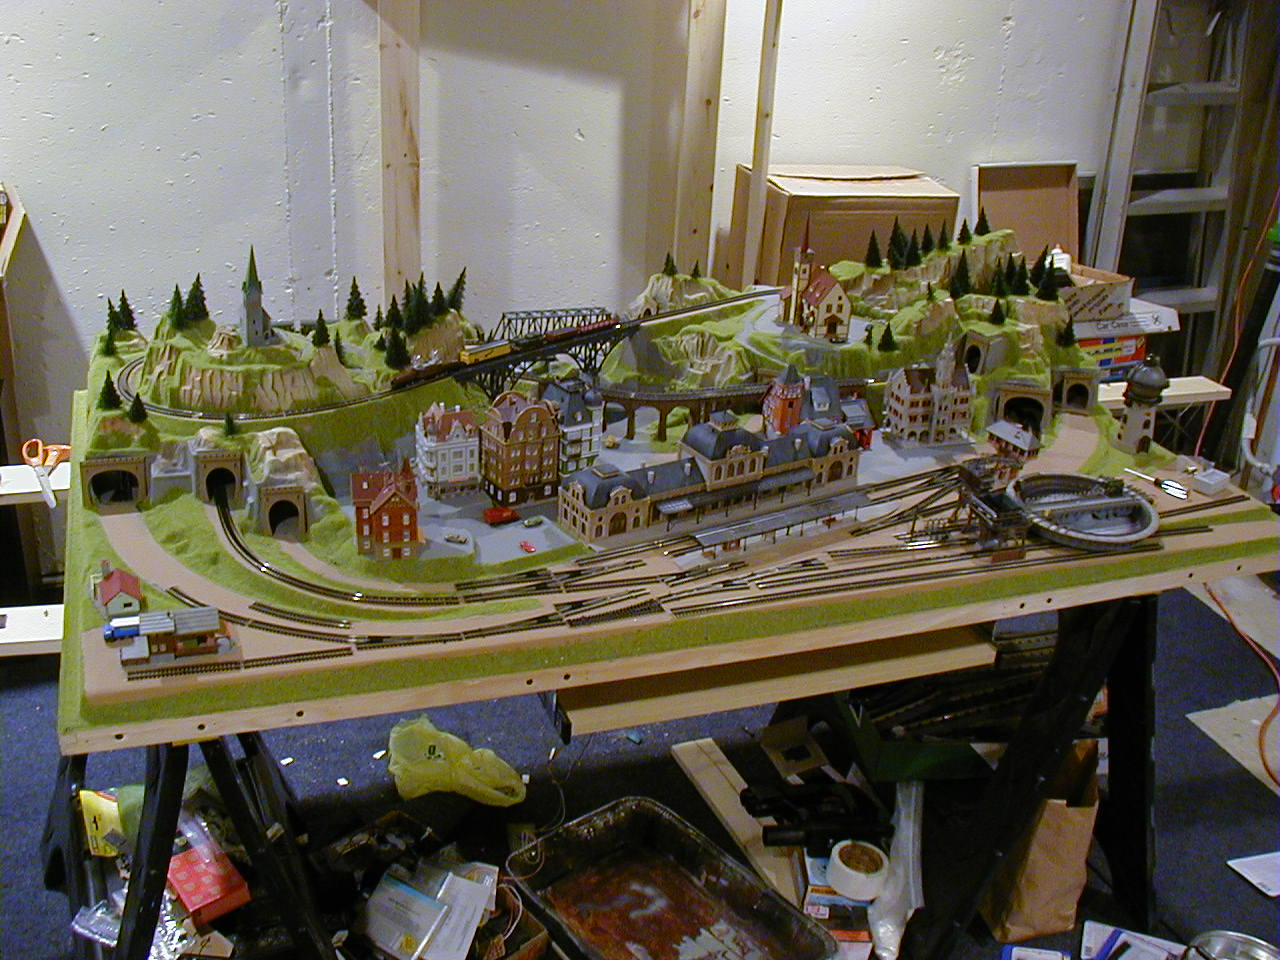 hight resolution of 3 x 5 outstanding n scale model train layout image 14